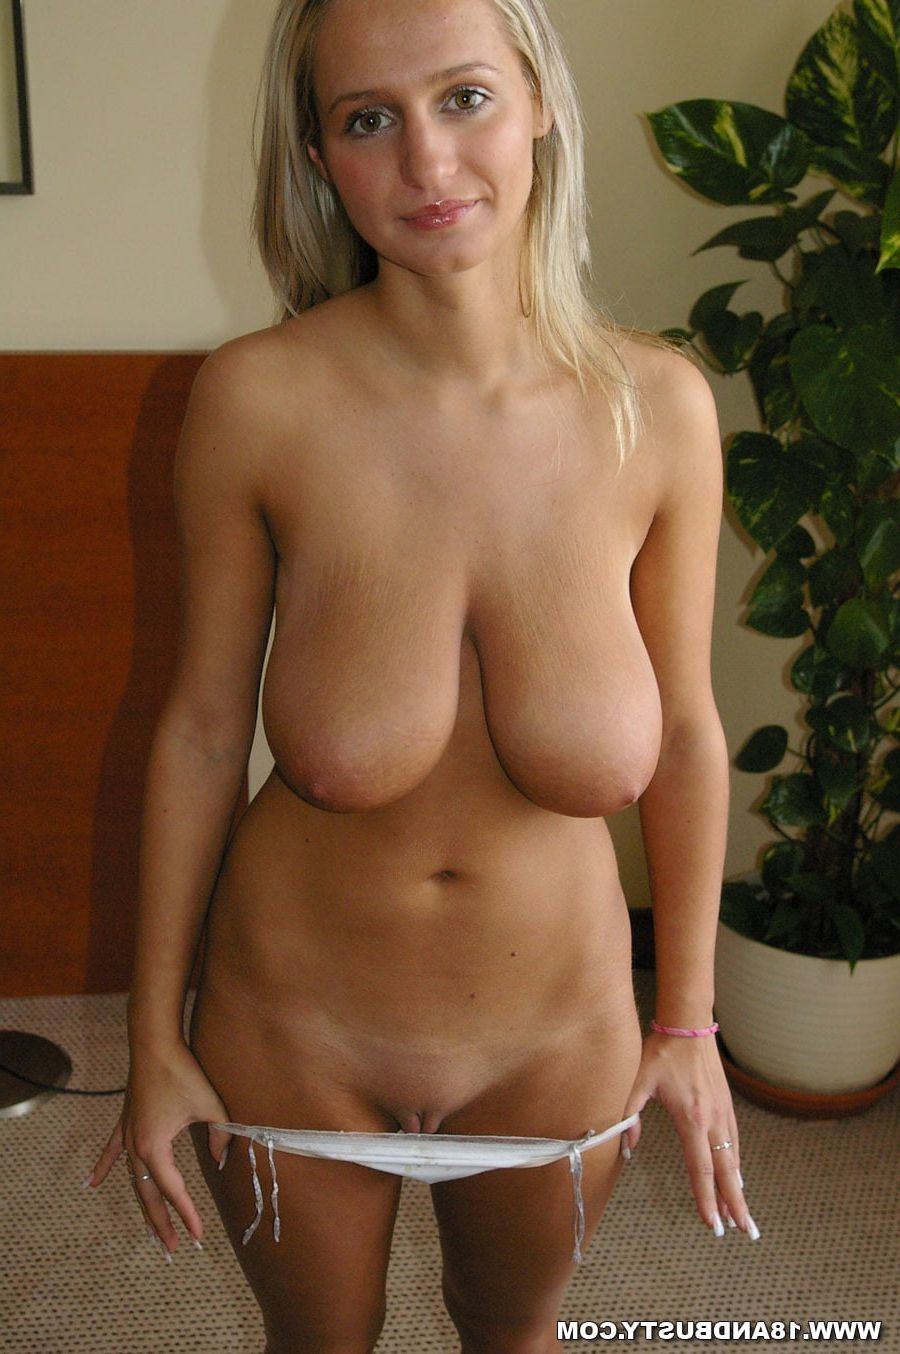 mature natural tit porn - pics and galleries